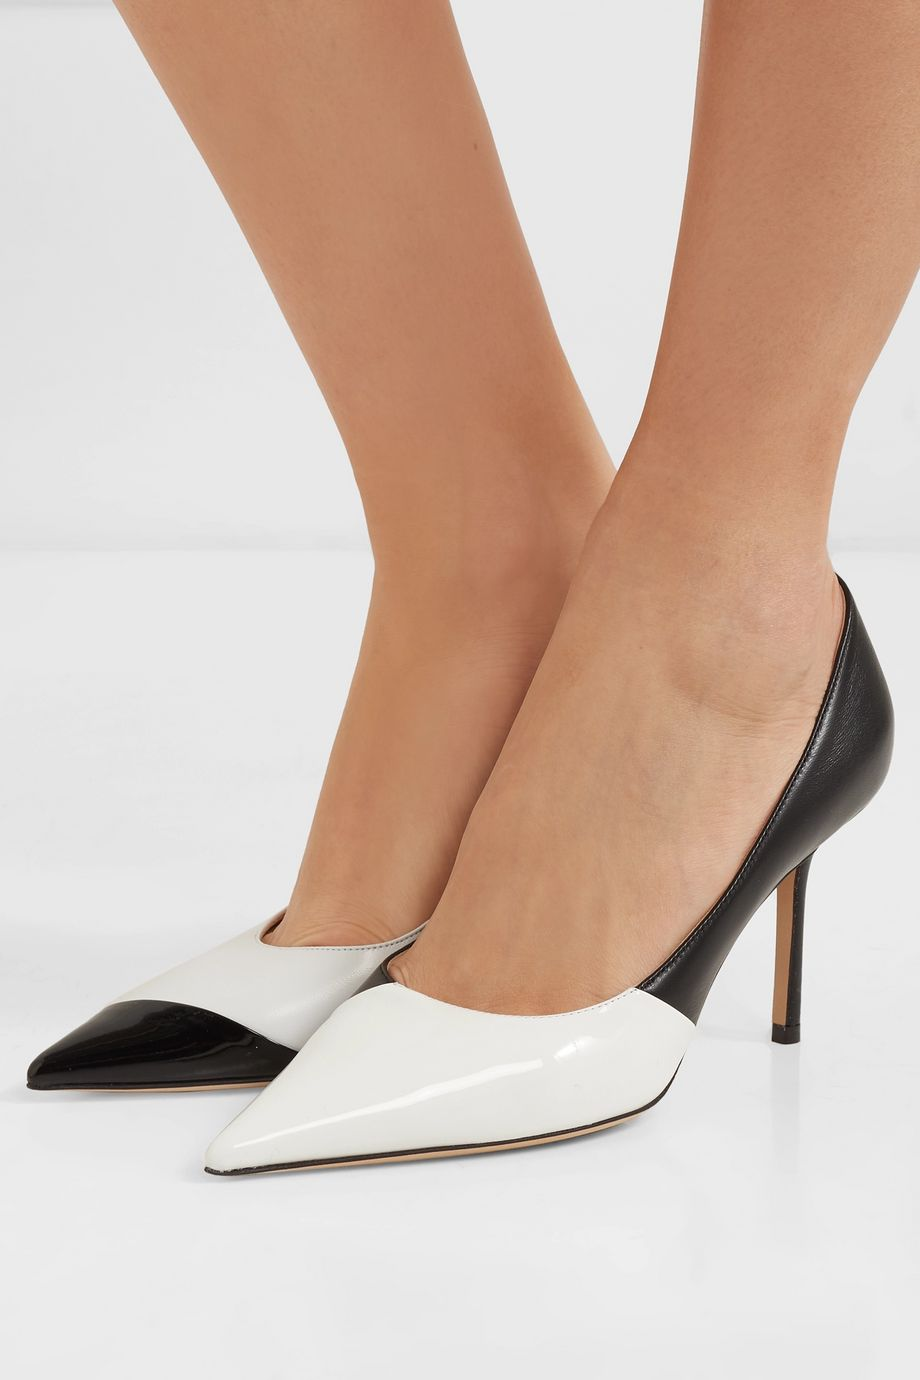 Jimmy Choo Love 85 mismatched two-tone matte and patent-leather pumps